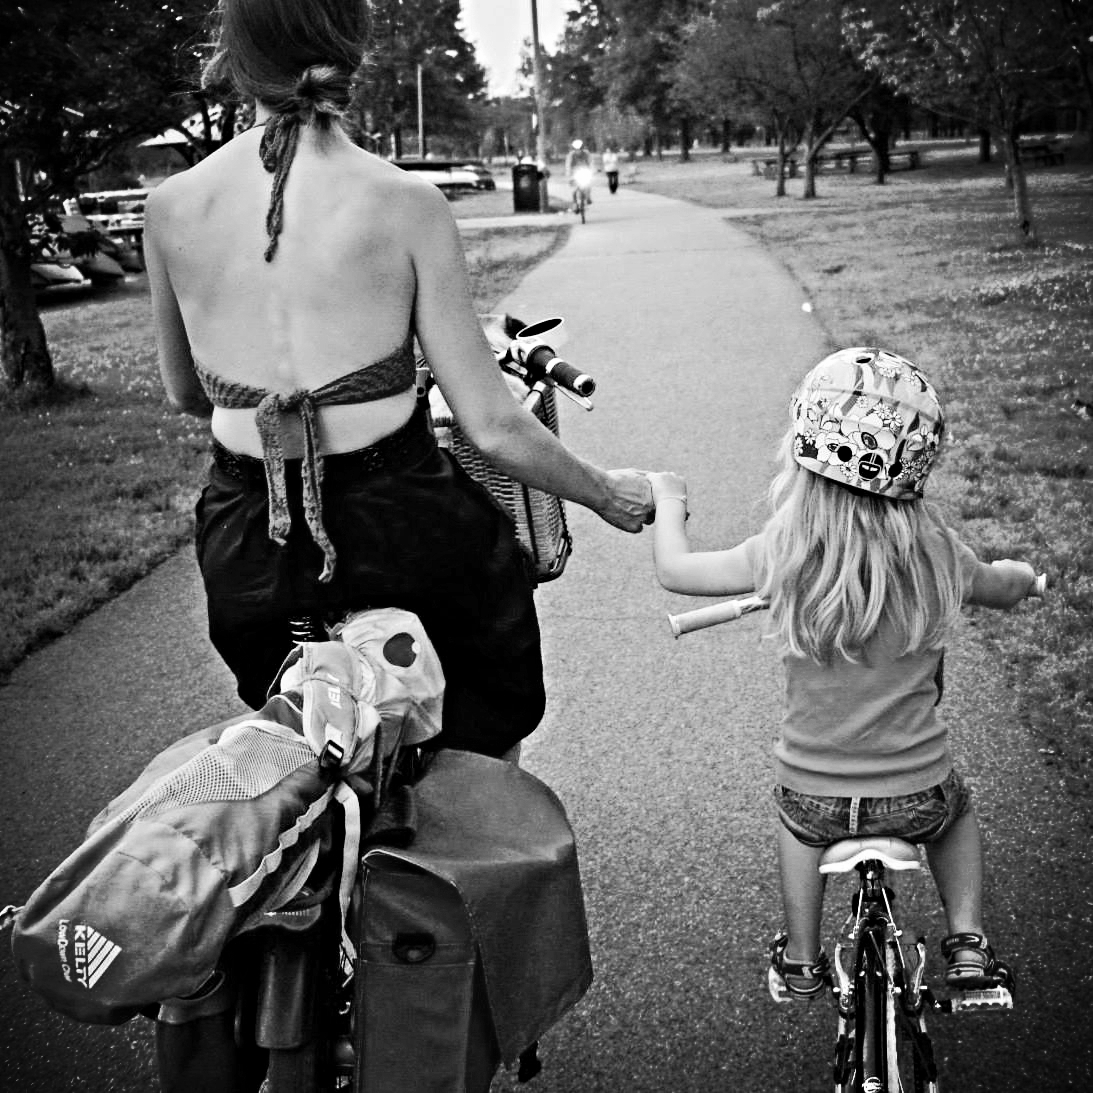 Bikabout-Megan-Ramey-holding-hands-with-daughter-biking.jpg